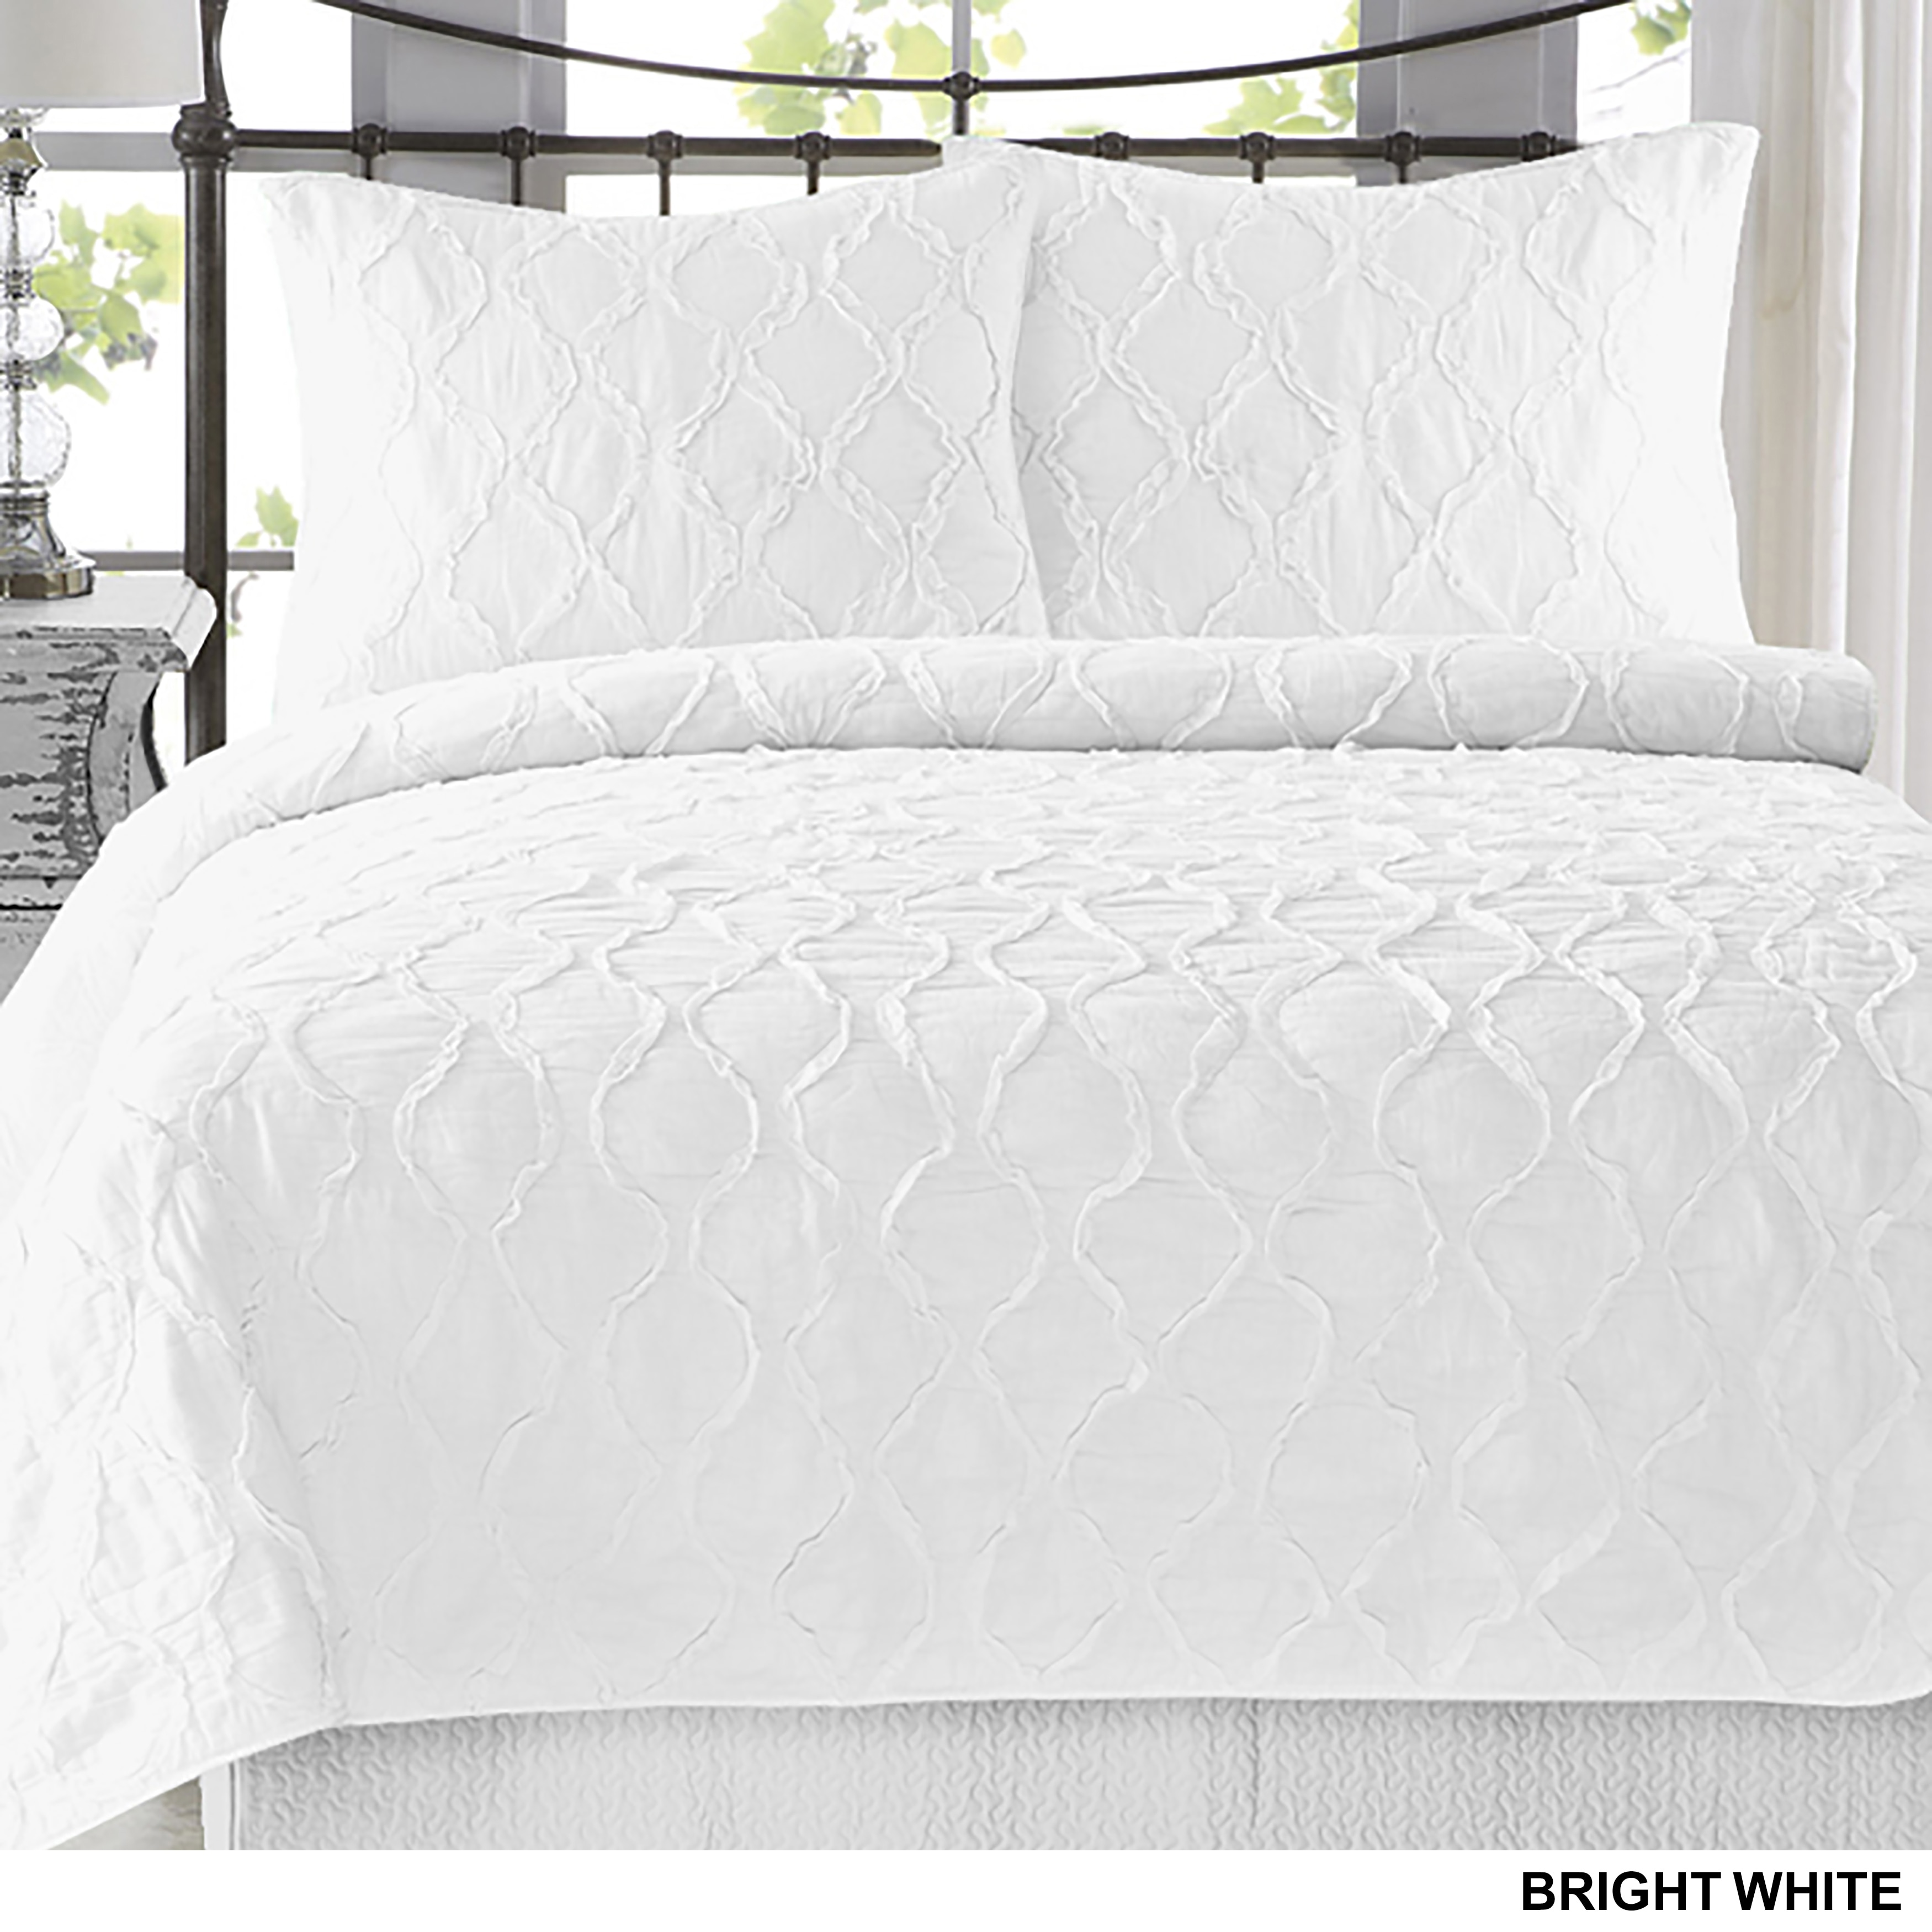 piece today bath bedding shipping comforter overstock set ruffle free product decor lush stripe white